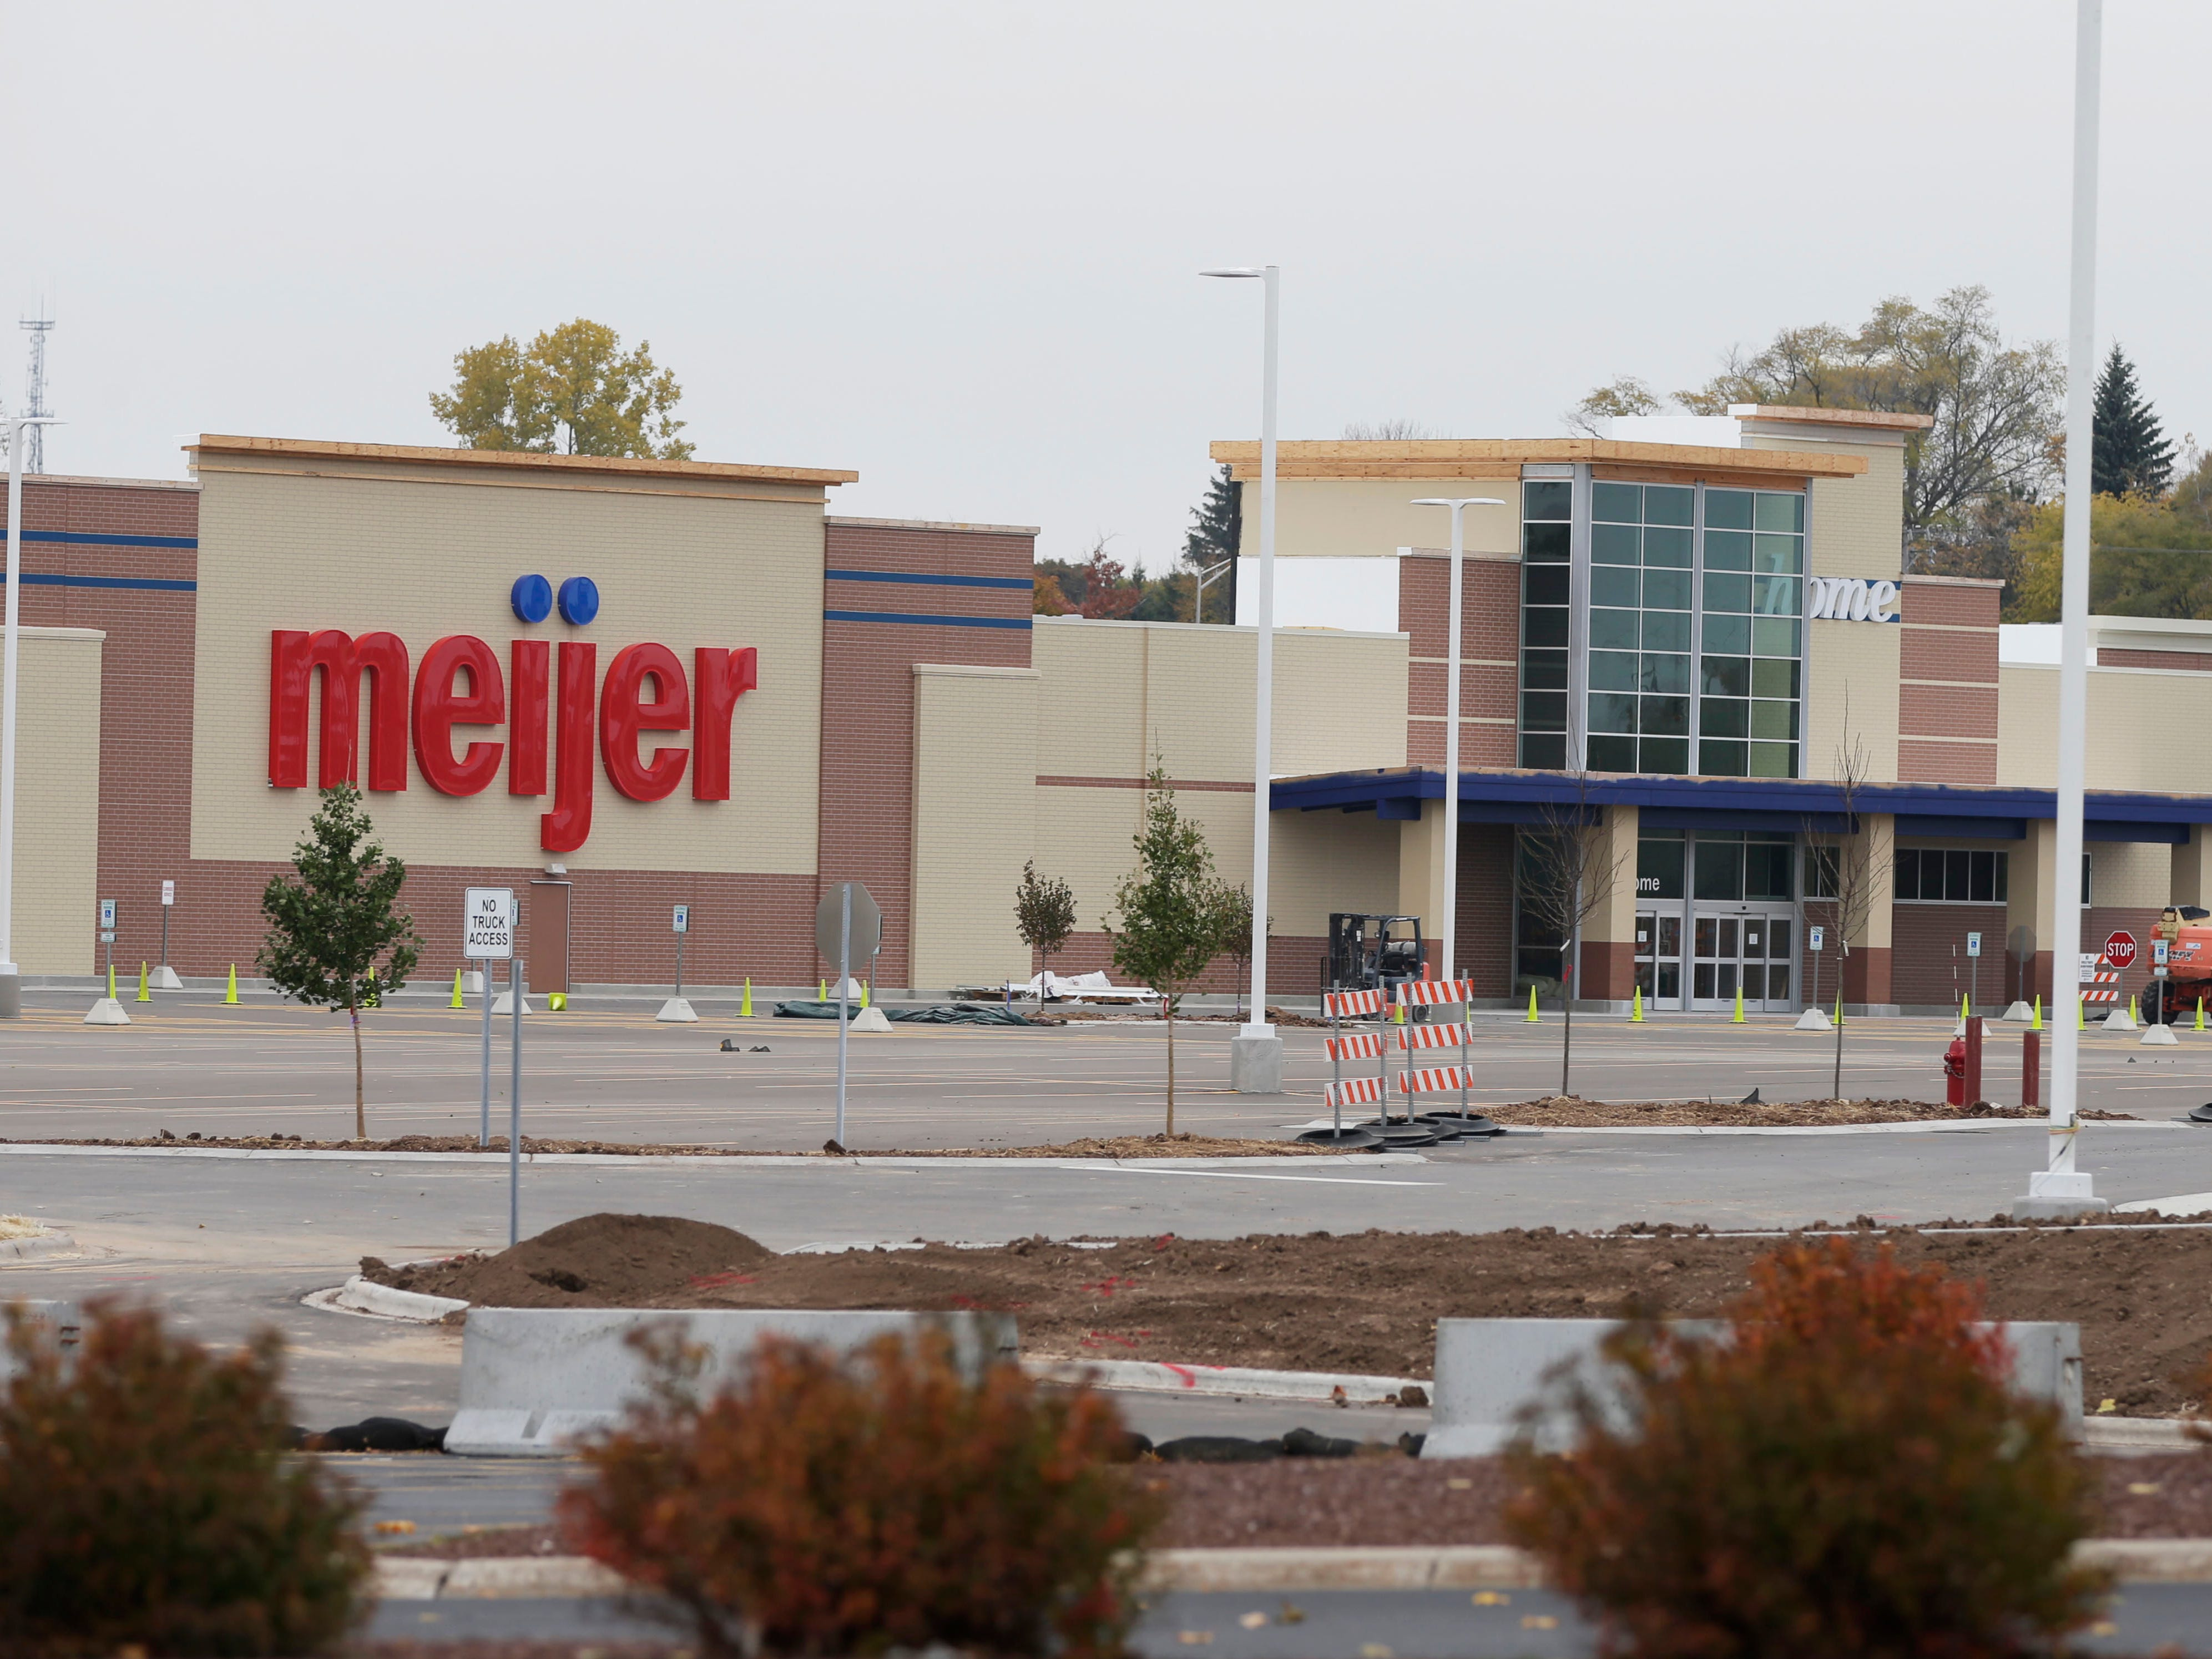 A view of the status of the new Meijer building, Friday, October 26, 2018, in Sheboygan, Wis.